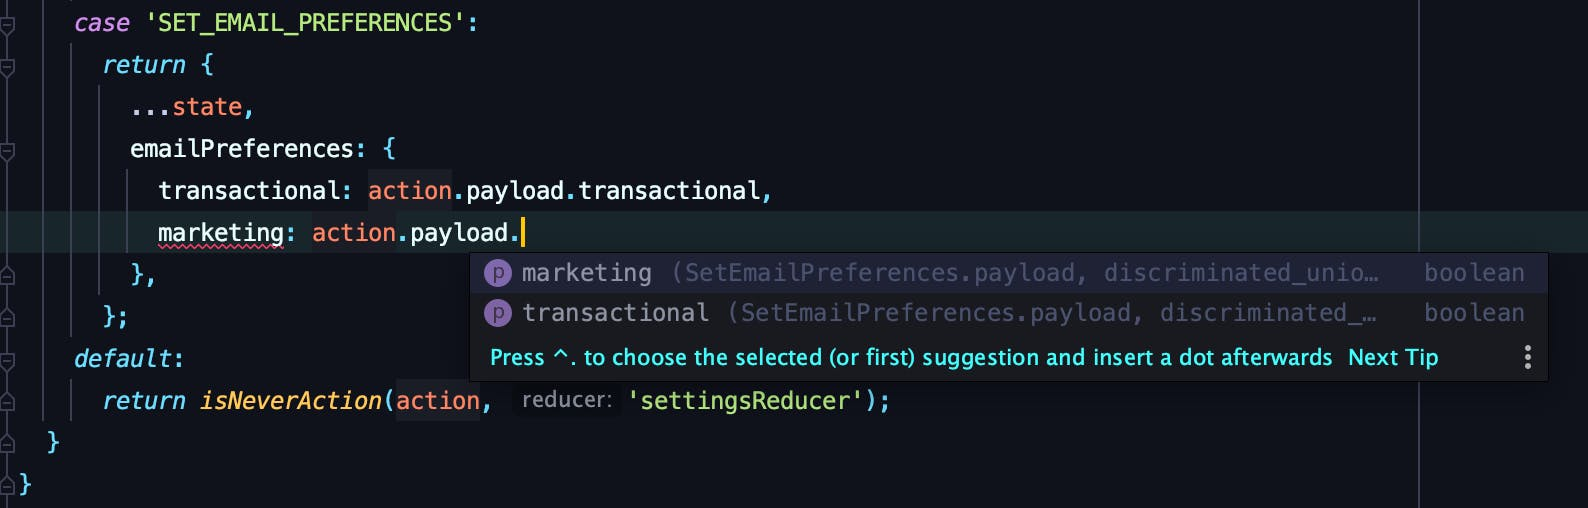 WebStorm autocomplete only has marketing or transactional